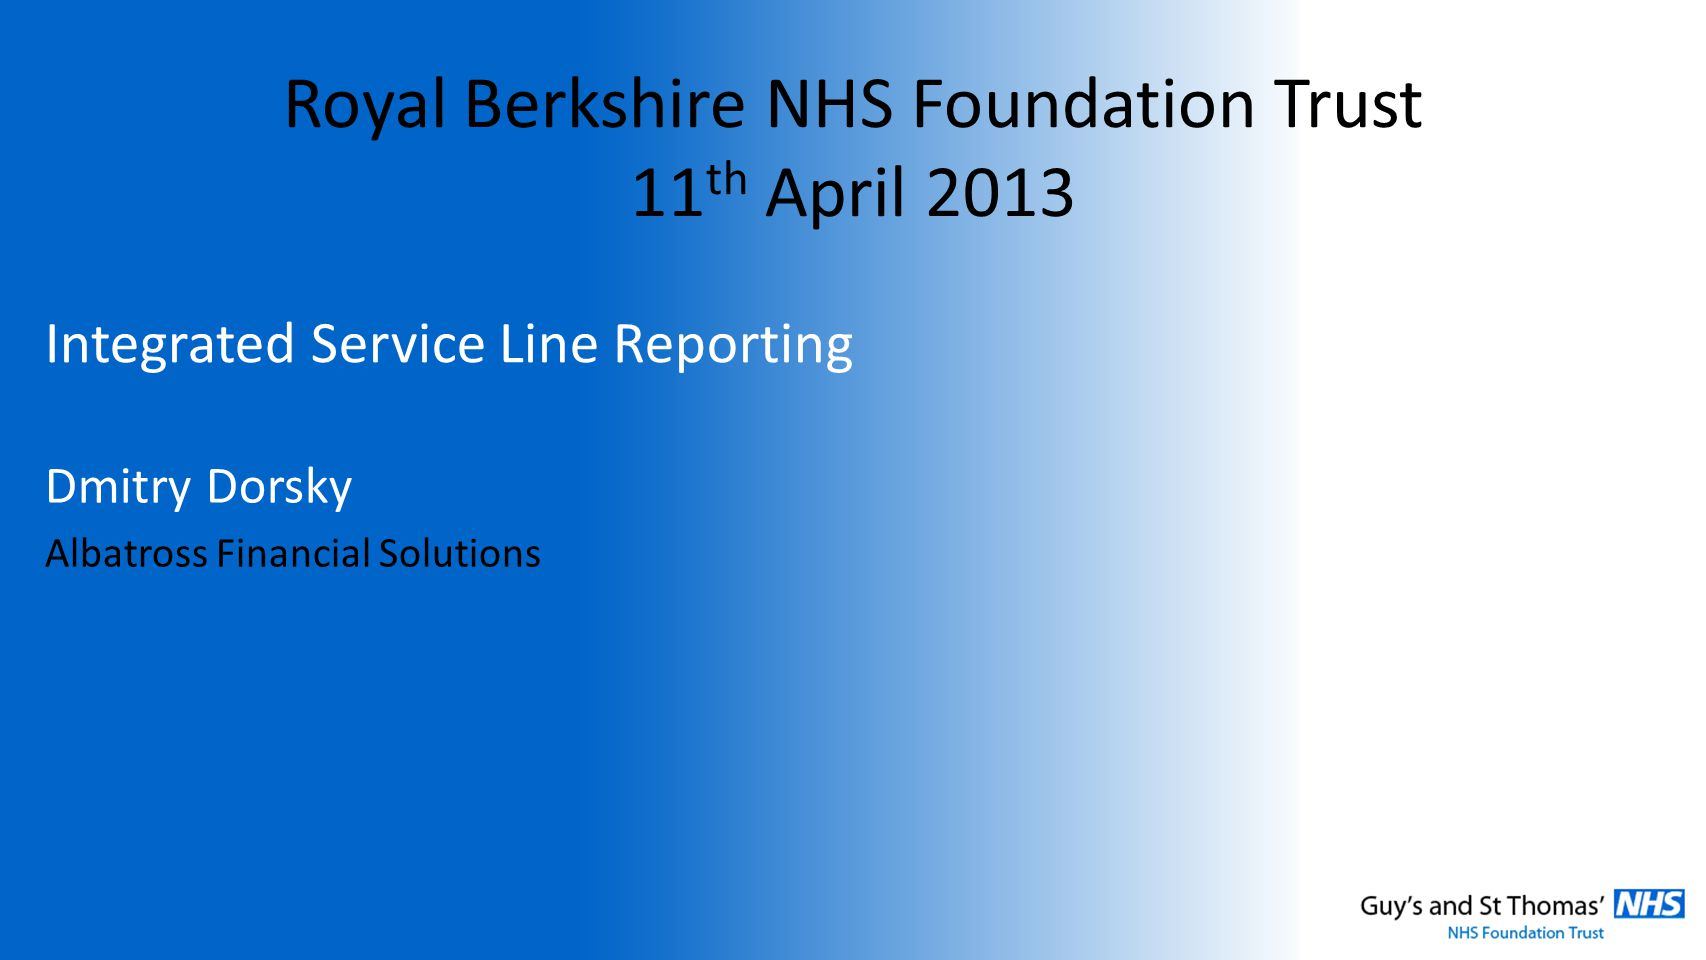 Integrated Service Line Reporting